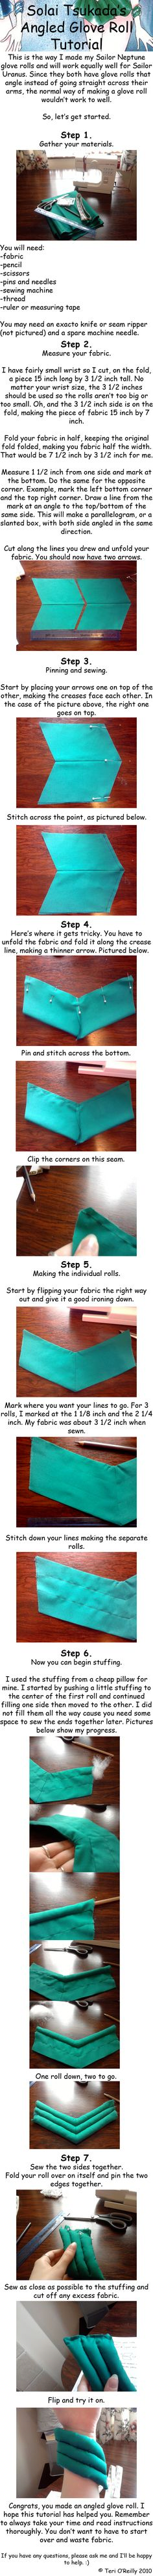 Angled Glove Roll Tutorial by Solai-Tsukada